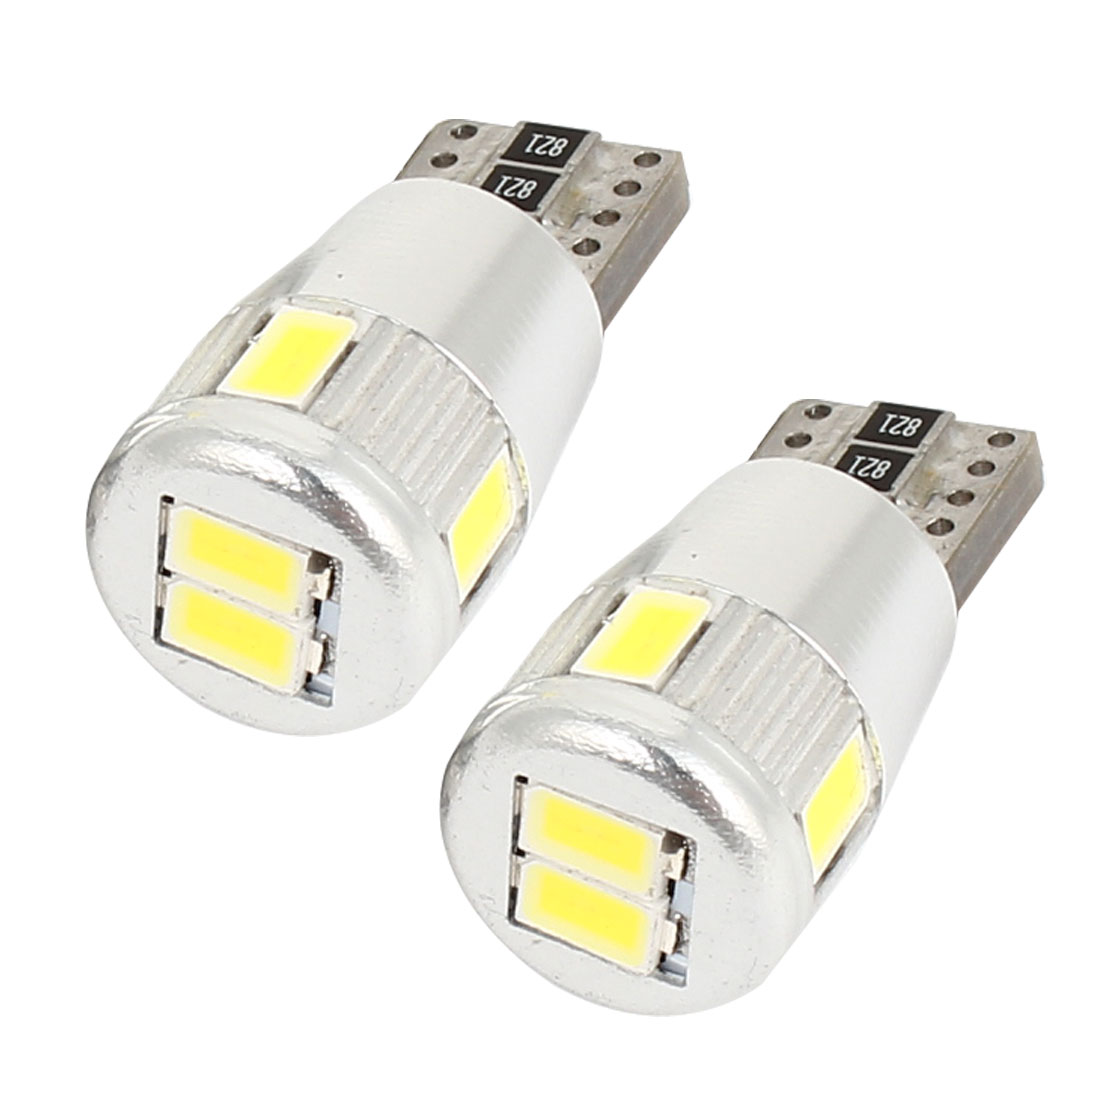 Car Cambus T10 W5W 6 5630 SMD LED Signal Bulb Light Turning Lamp 12V 2 Pcs internal